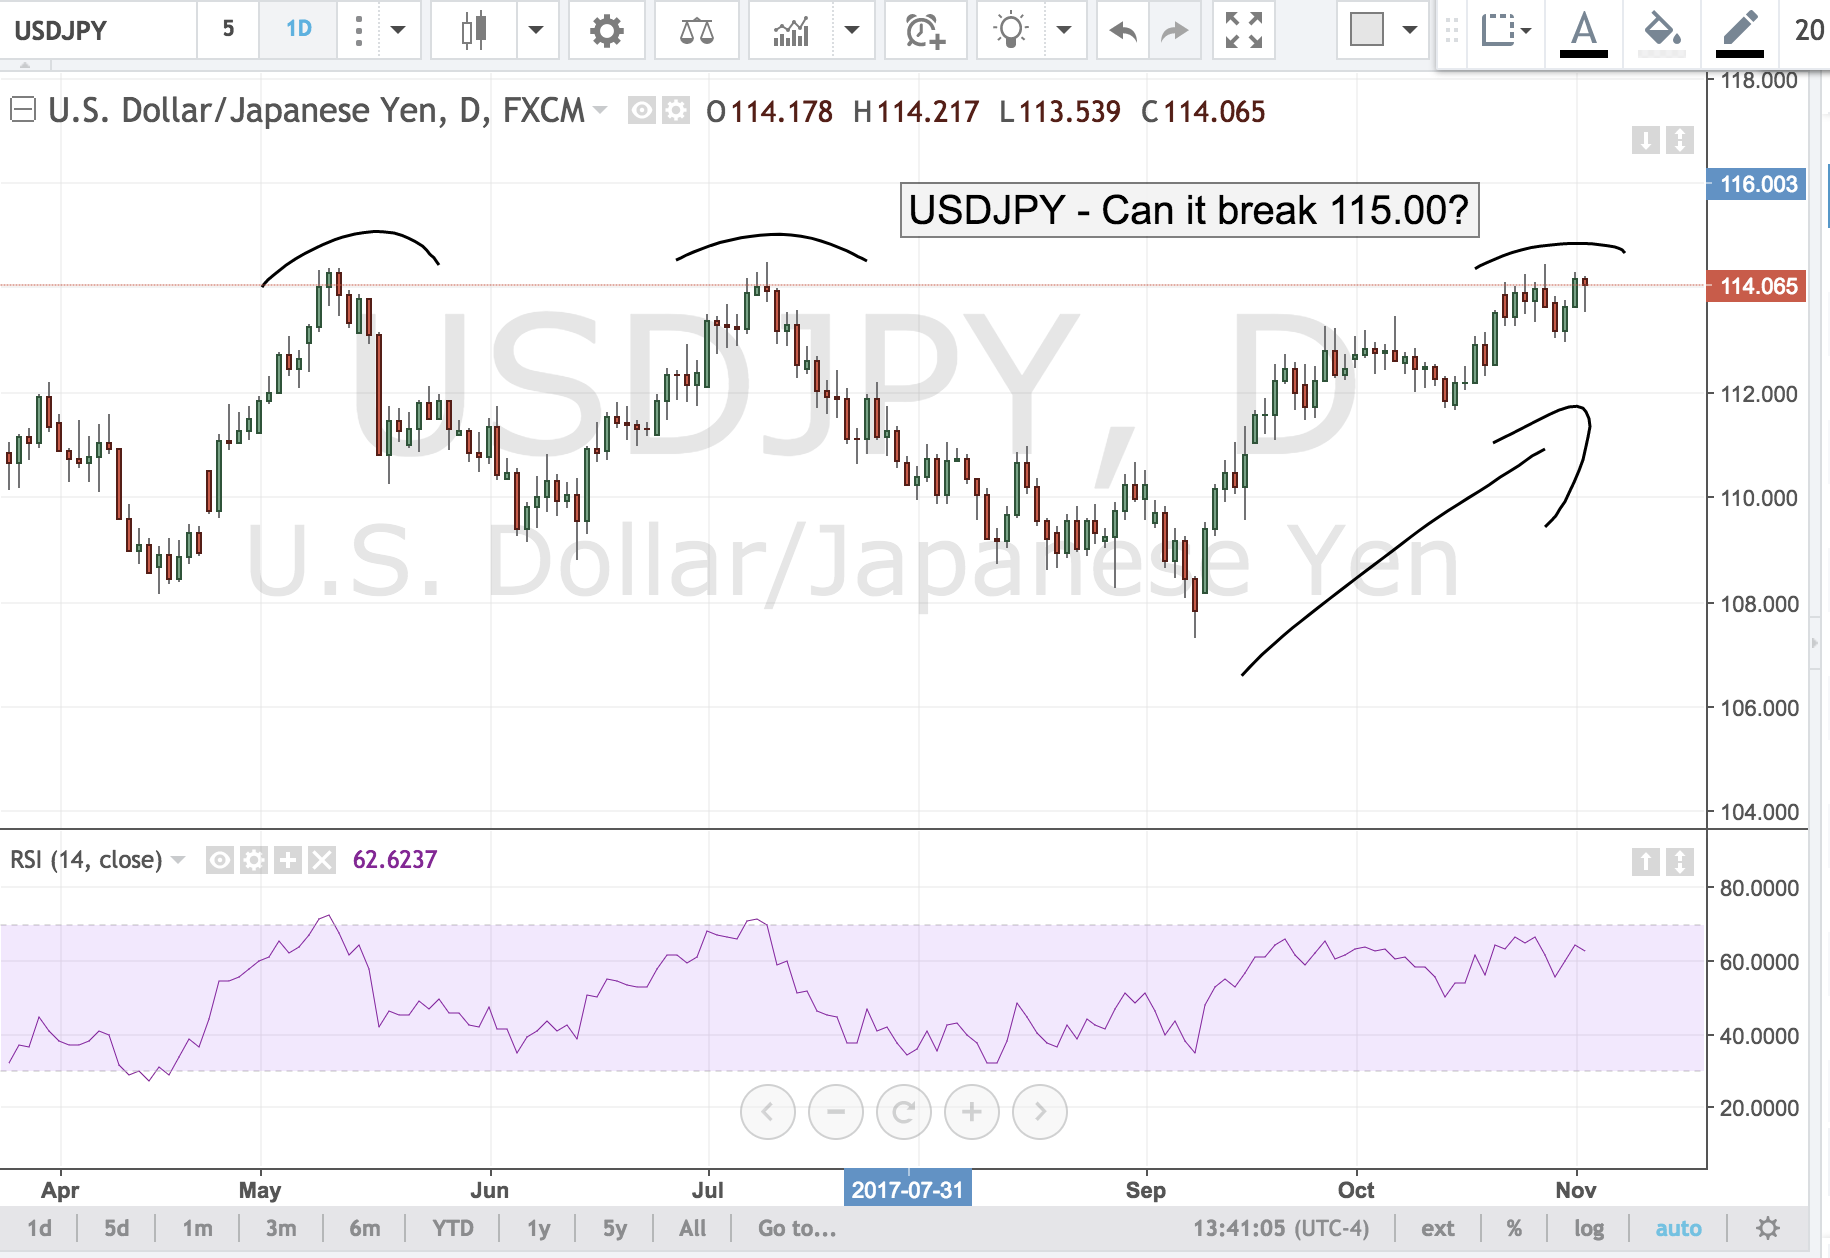 USDJPY – Can it Break 115.00?